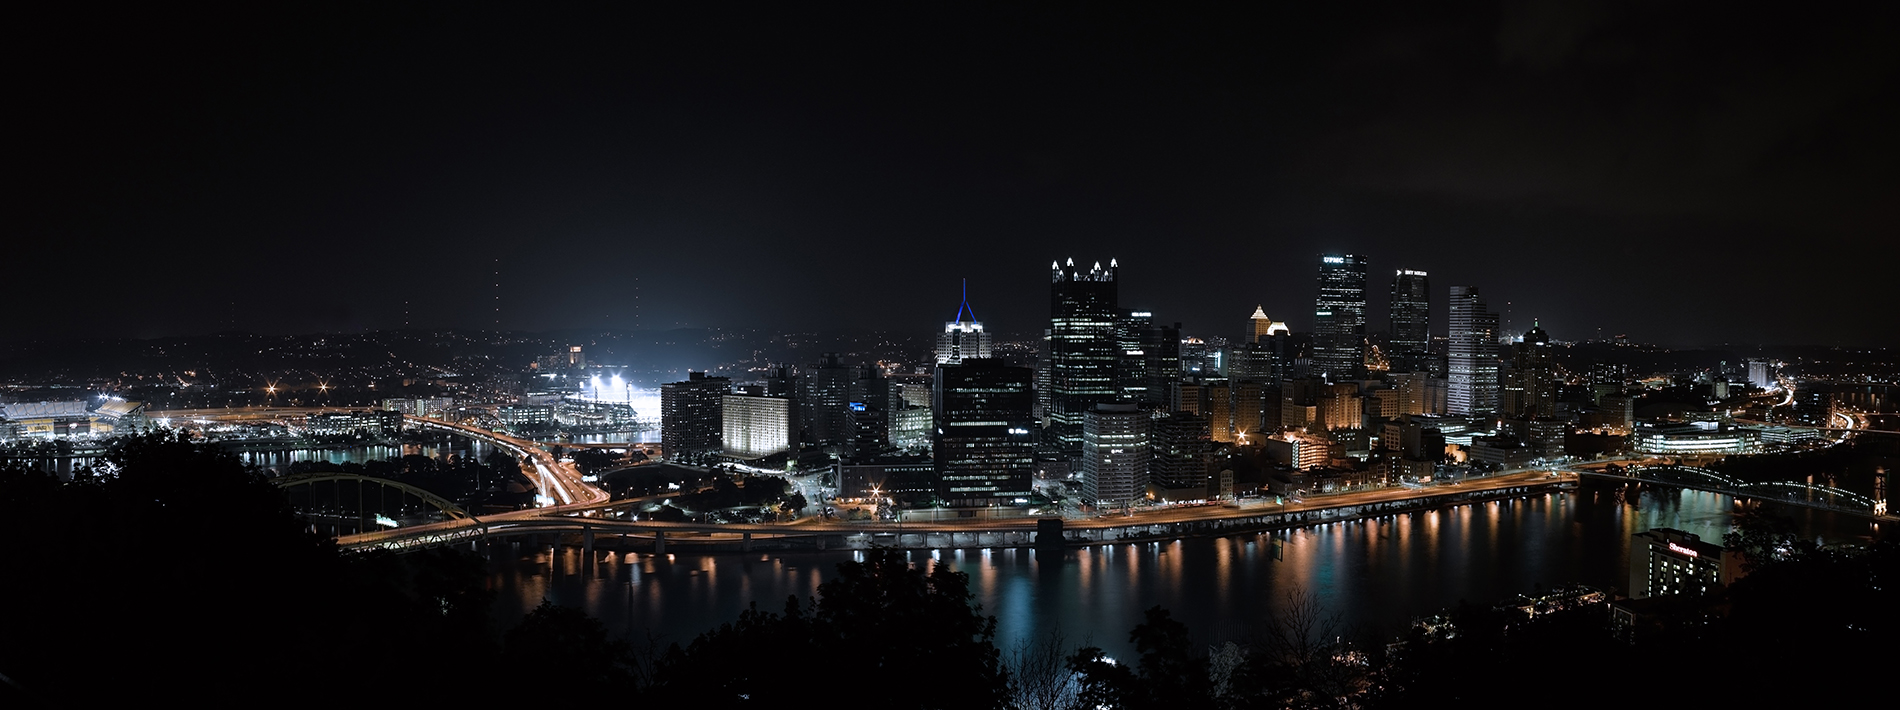 Panoramic Photography of Pittsburgh, Pennsylvania, USA as seen from Mt Washington at night, by Travis Neely Photography